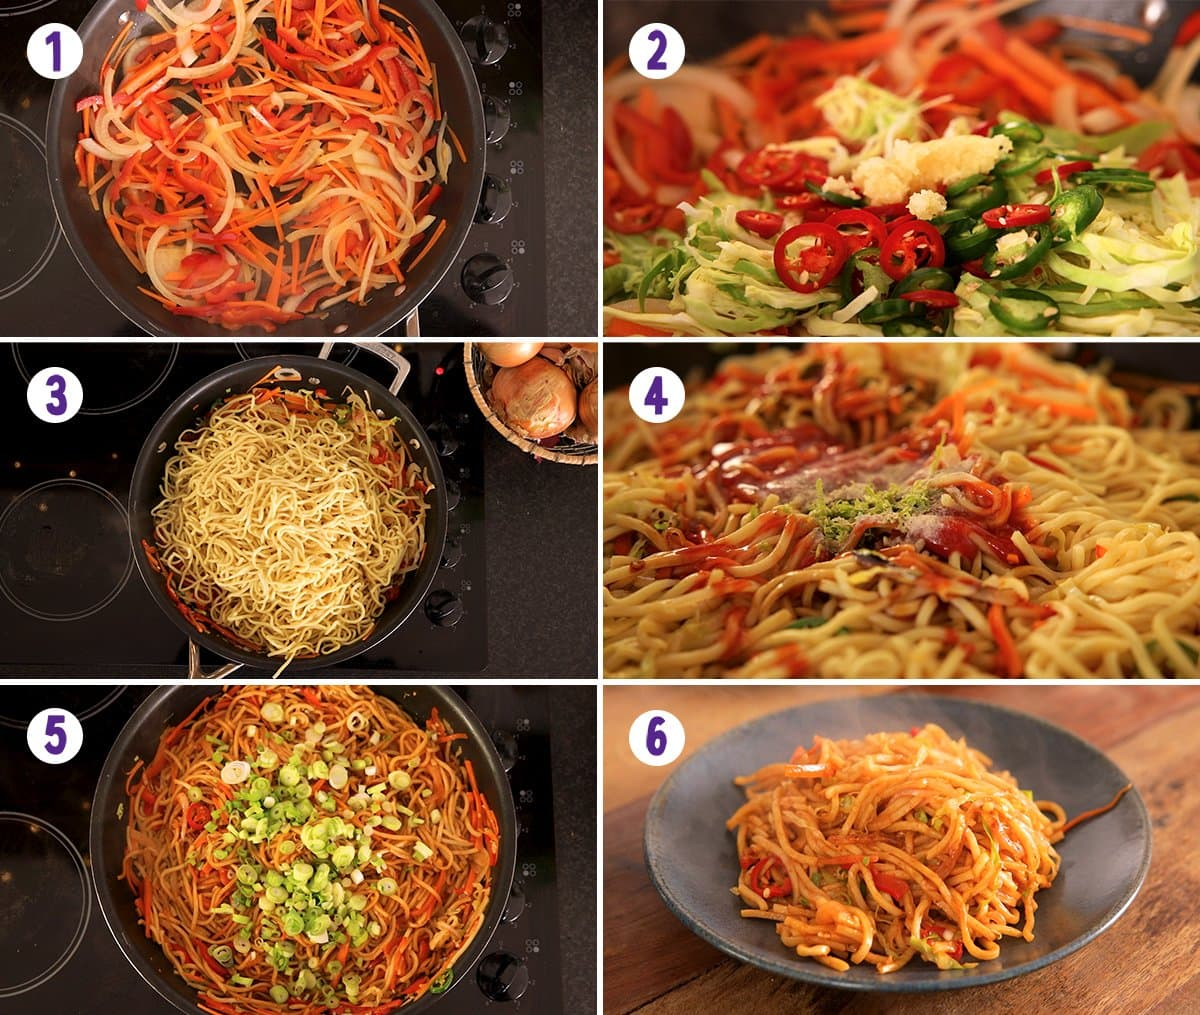 6 image collage showing how to make chilli lime noodles.